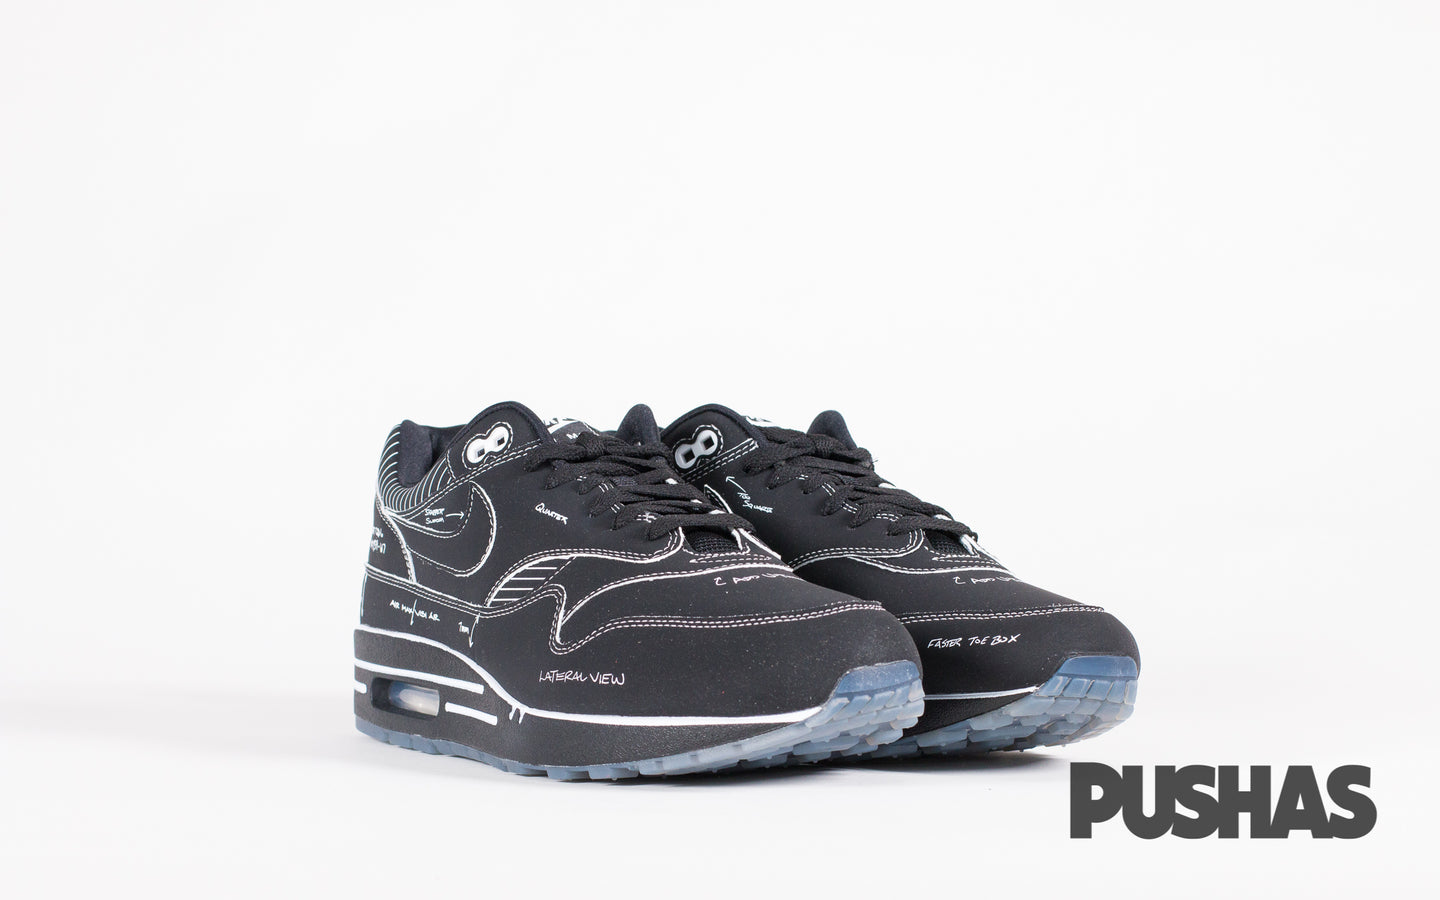 pushas-Nike-Air-Max-1-Tinker-Schematic-Black.